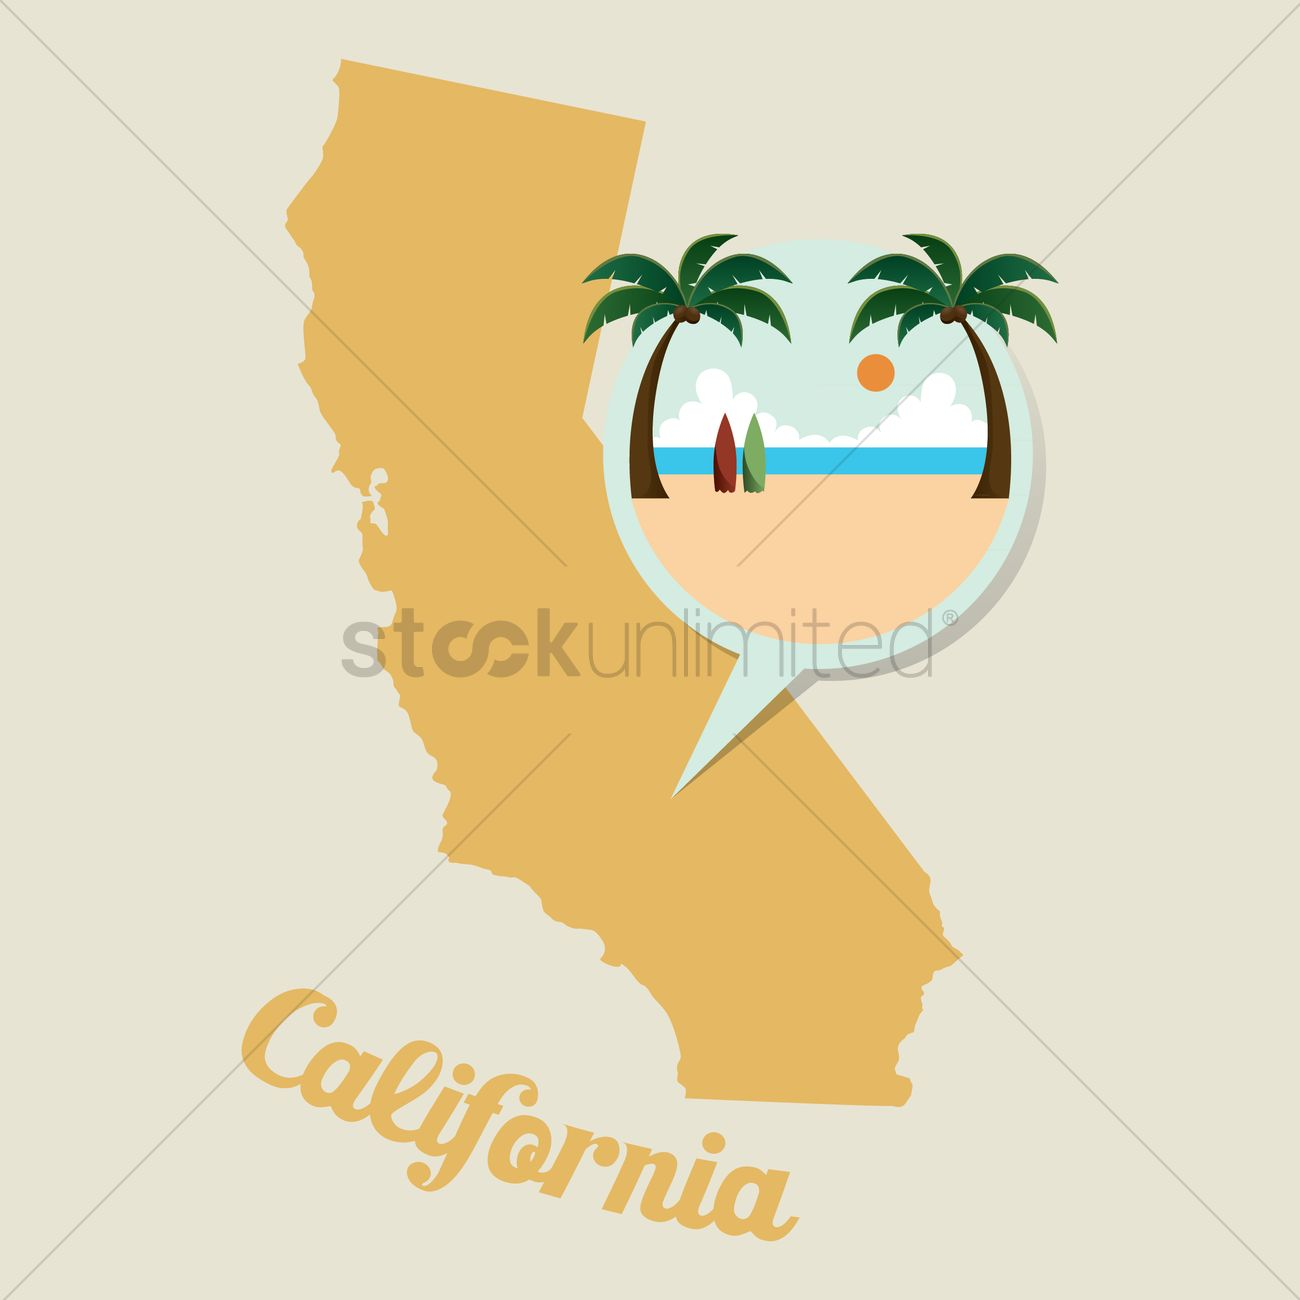 California Map Icon.California Map With Beach Icon Vector Image 1536717 Stockunlimited